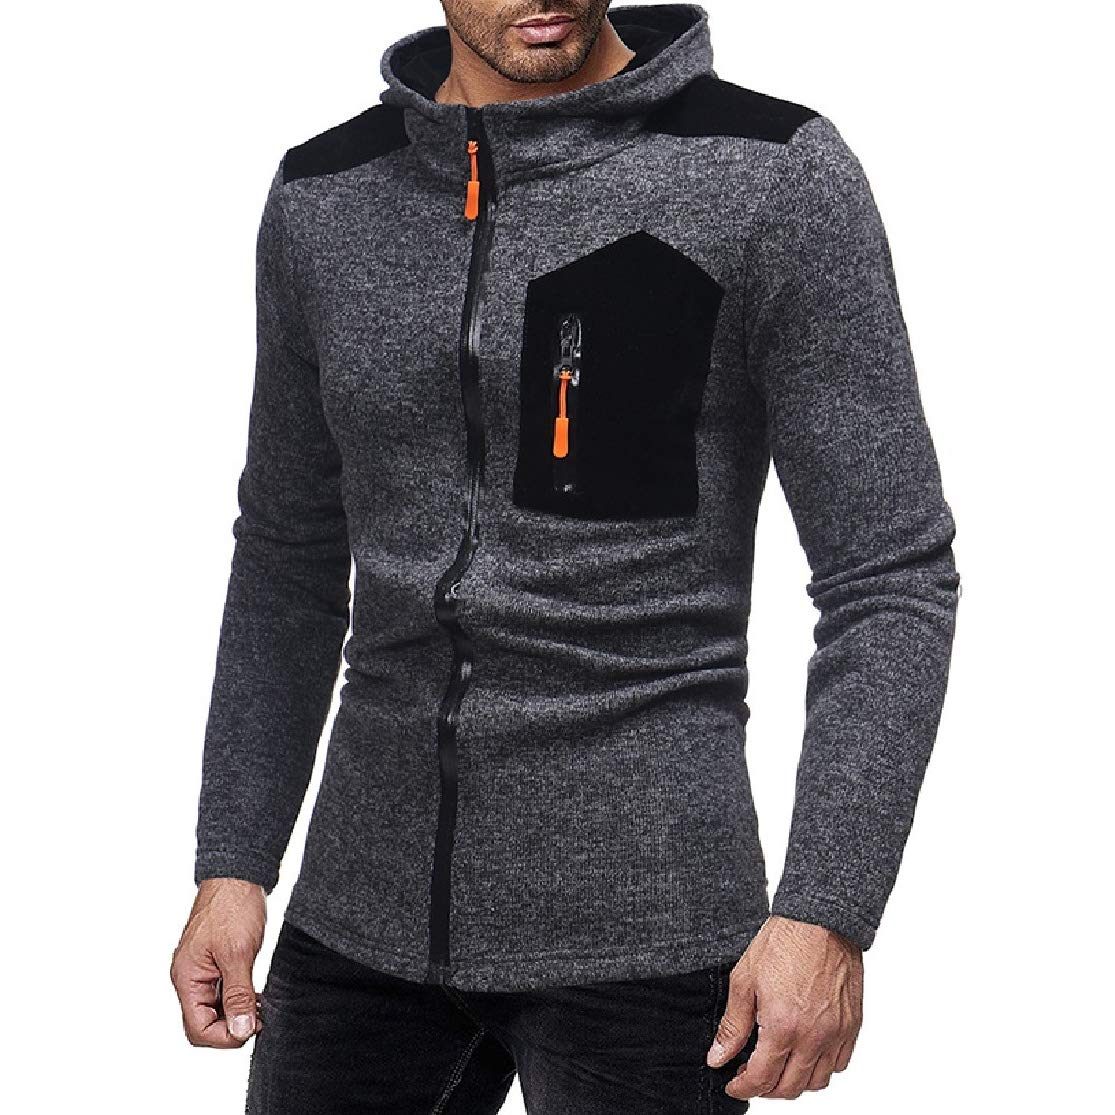 Colourful Mens Open Front Casual Hooded Jackets Long Sleeve Patched Full-Zip Sweatshirts